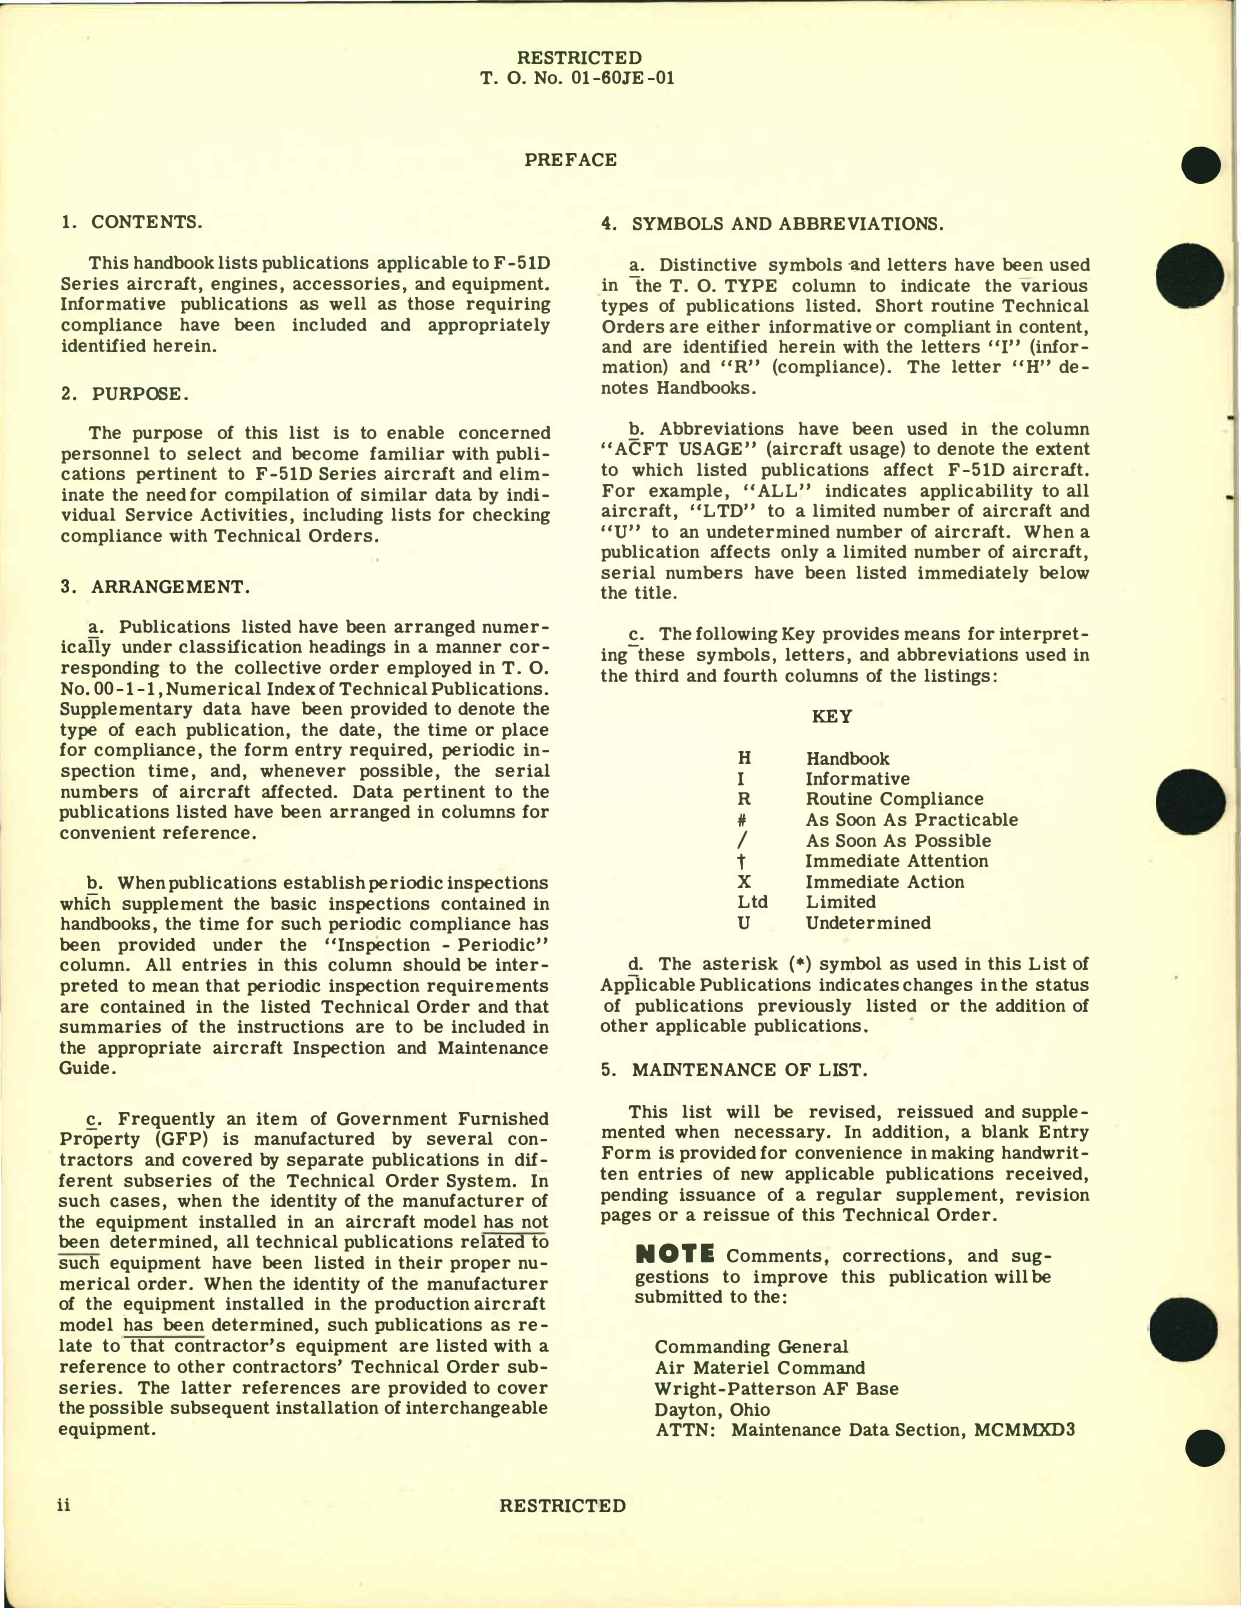 Sample page  4 from AirCorps Library document: F-51D Aircraft and Equipment - List of Applicable Publications